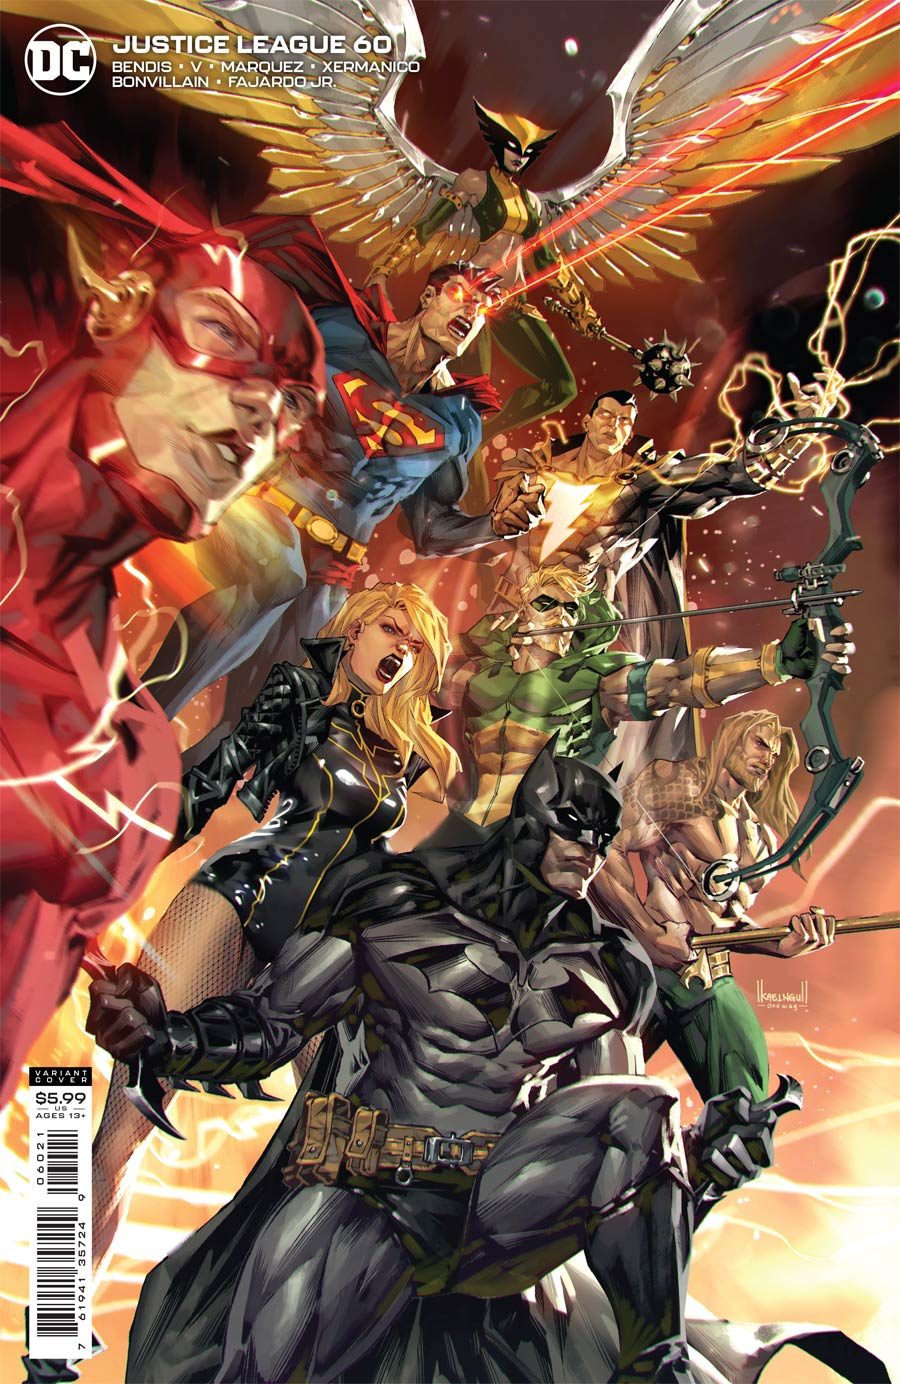 Justice League Vol 4 #60 Cover B Variant Kael Ngu Card Stock Cover